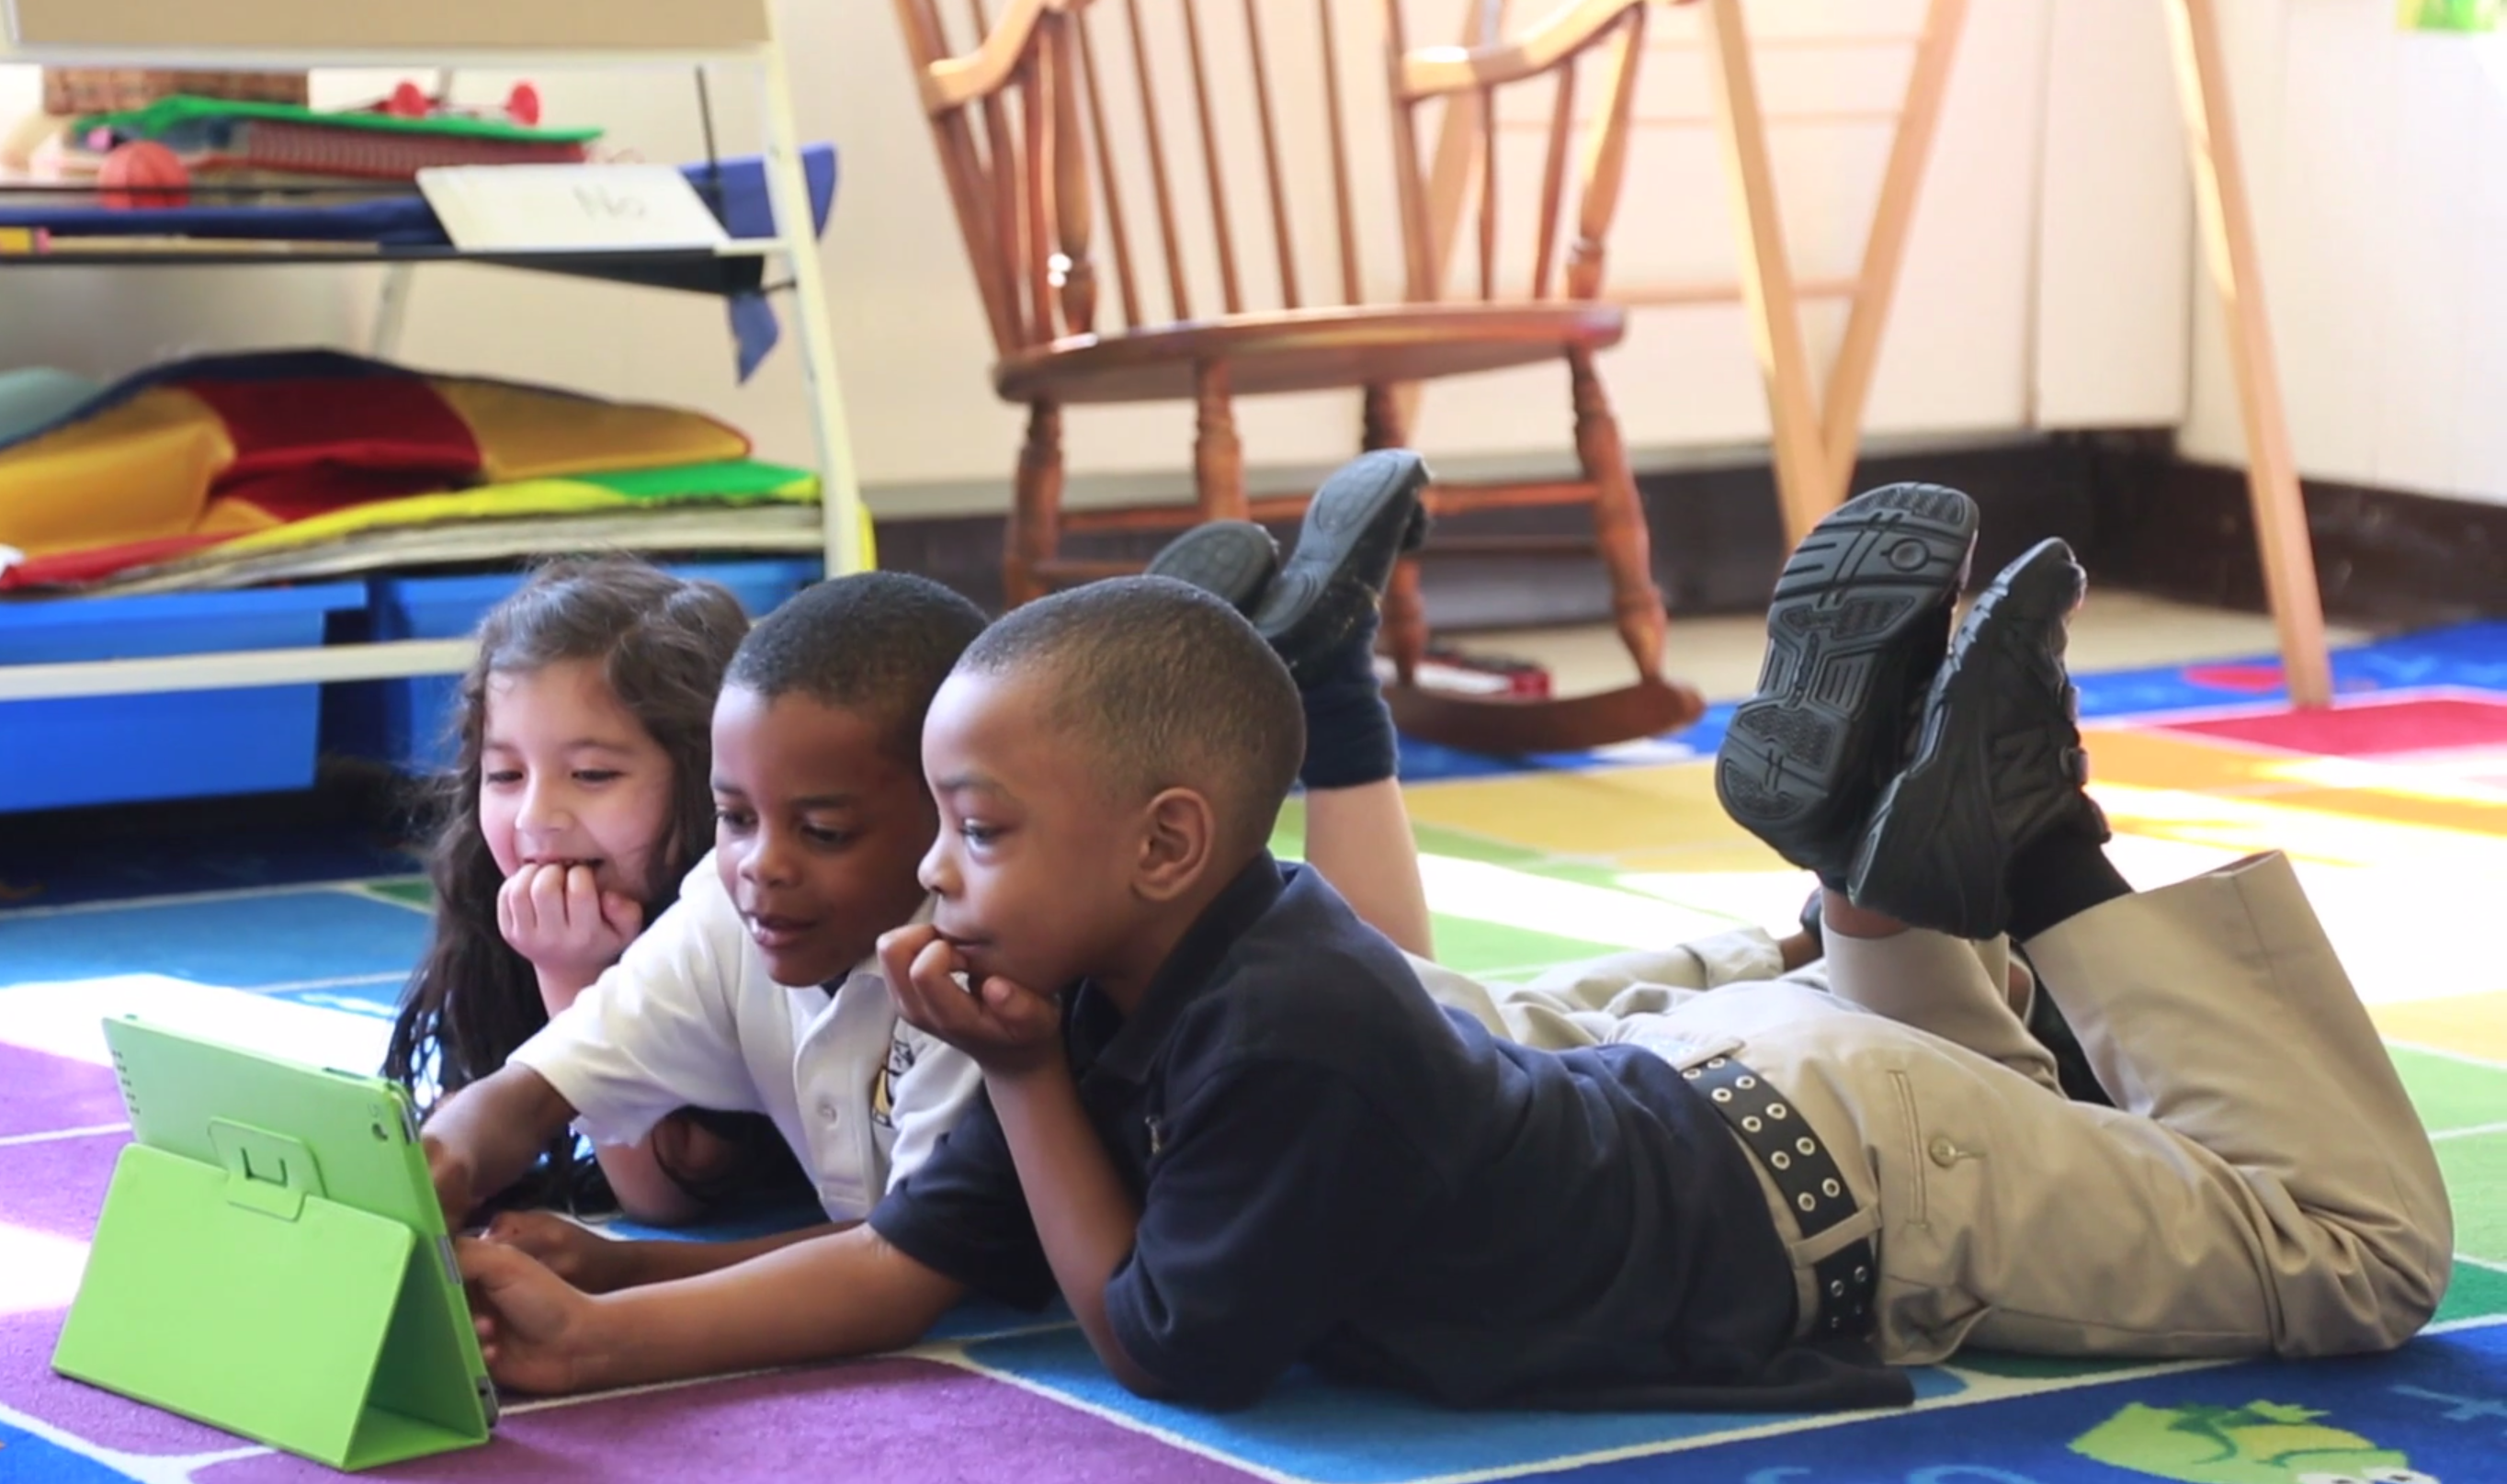 Using iPads to Increase Productivity in Elementary Education